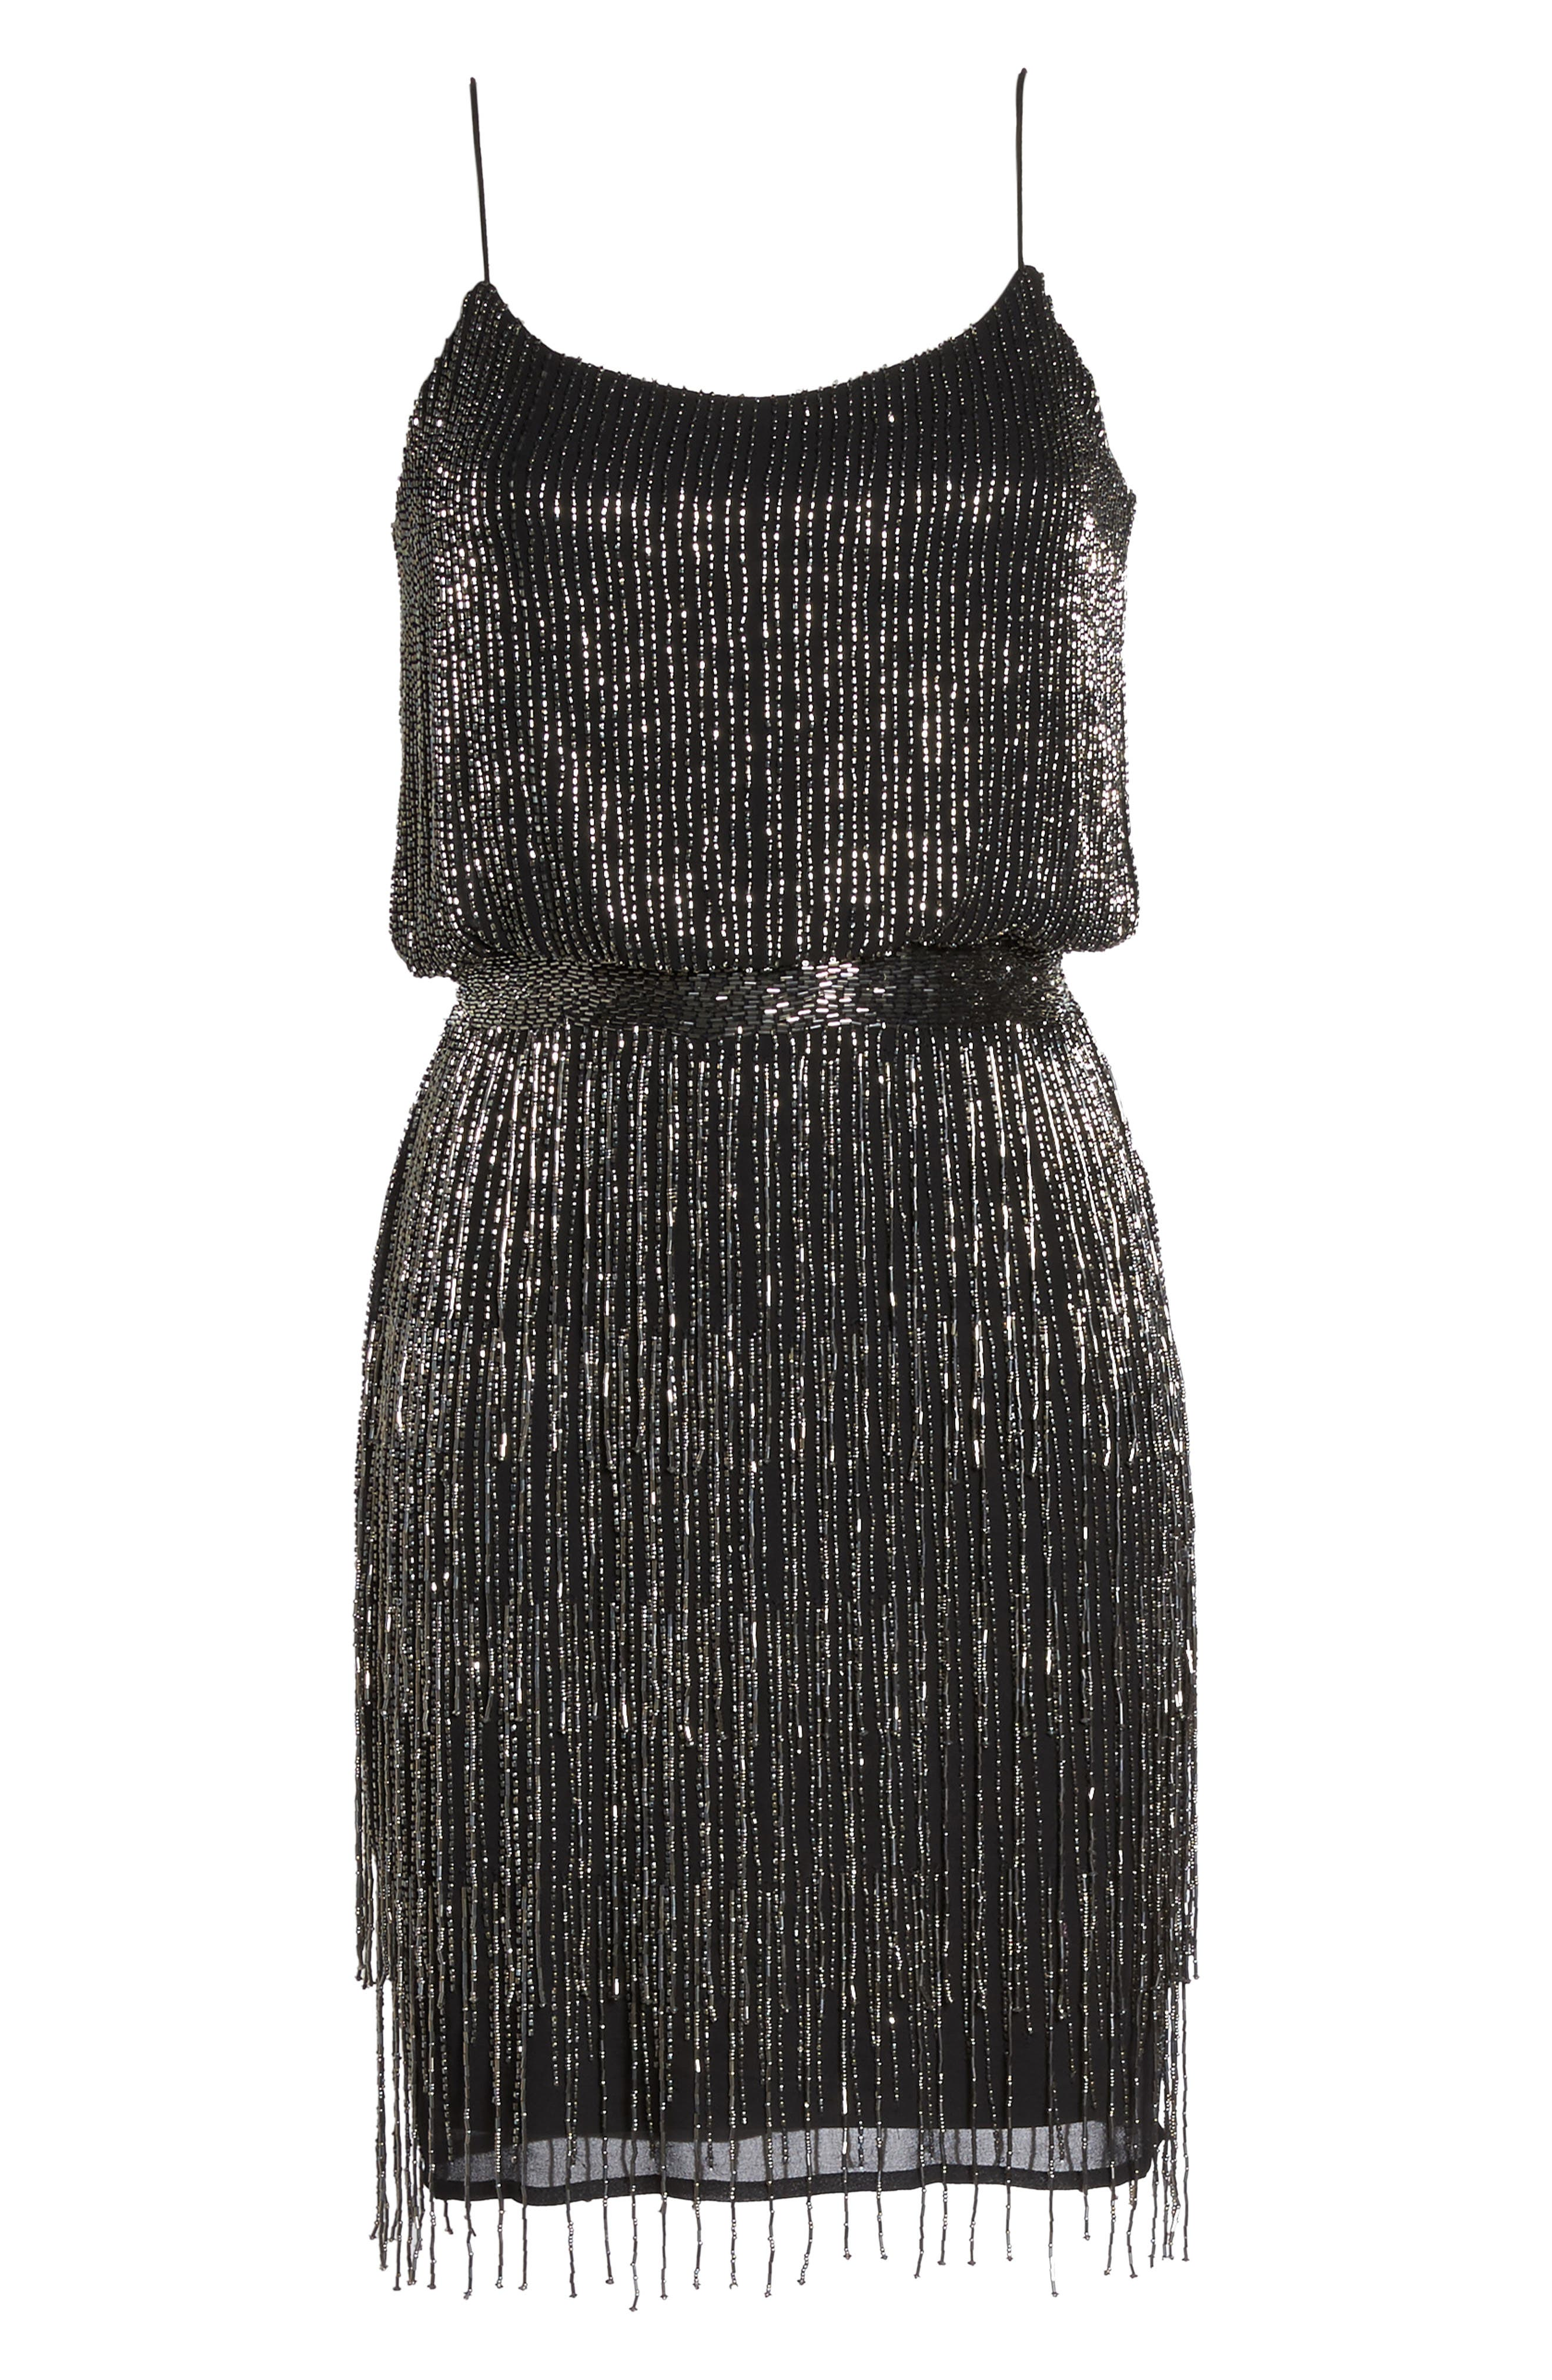 Beaded Fringe Blouson Dress,                             Alternate thumbnail 7, color,                             017